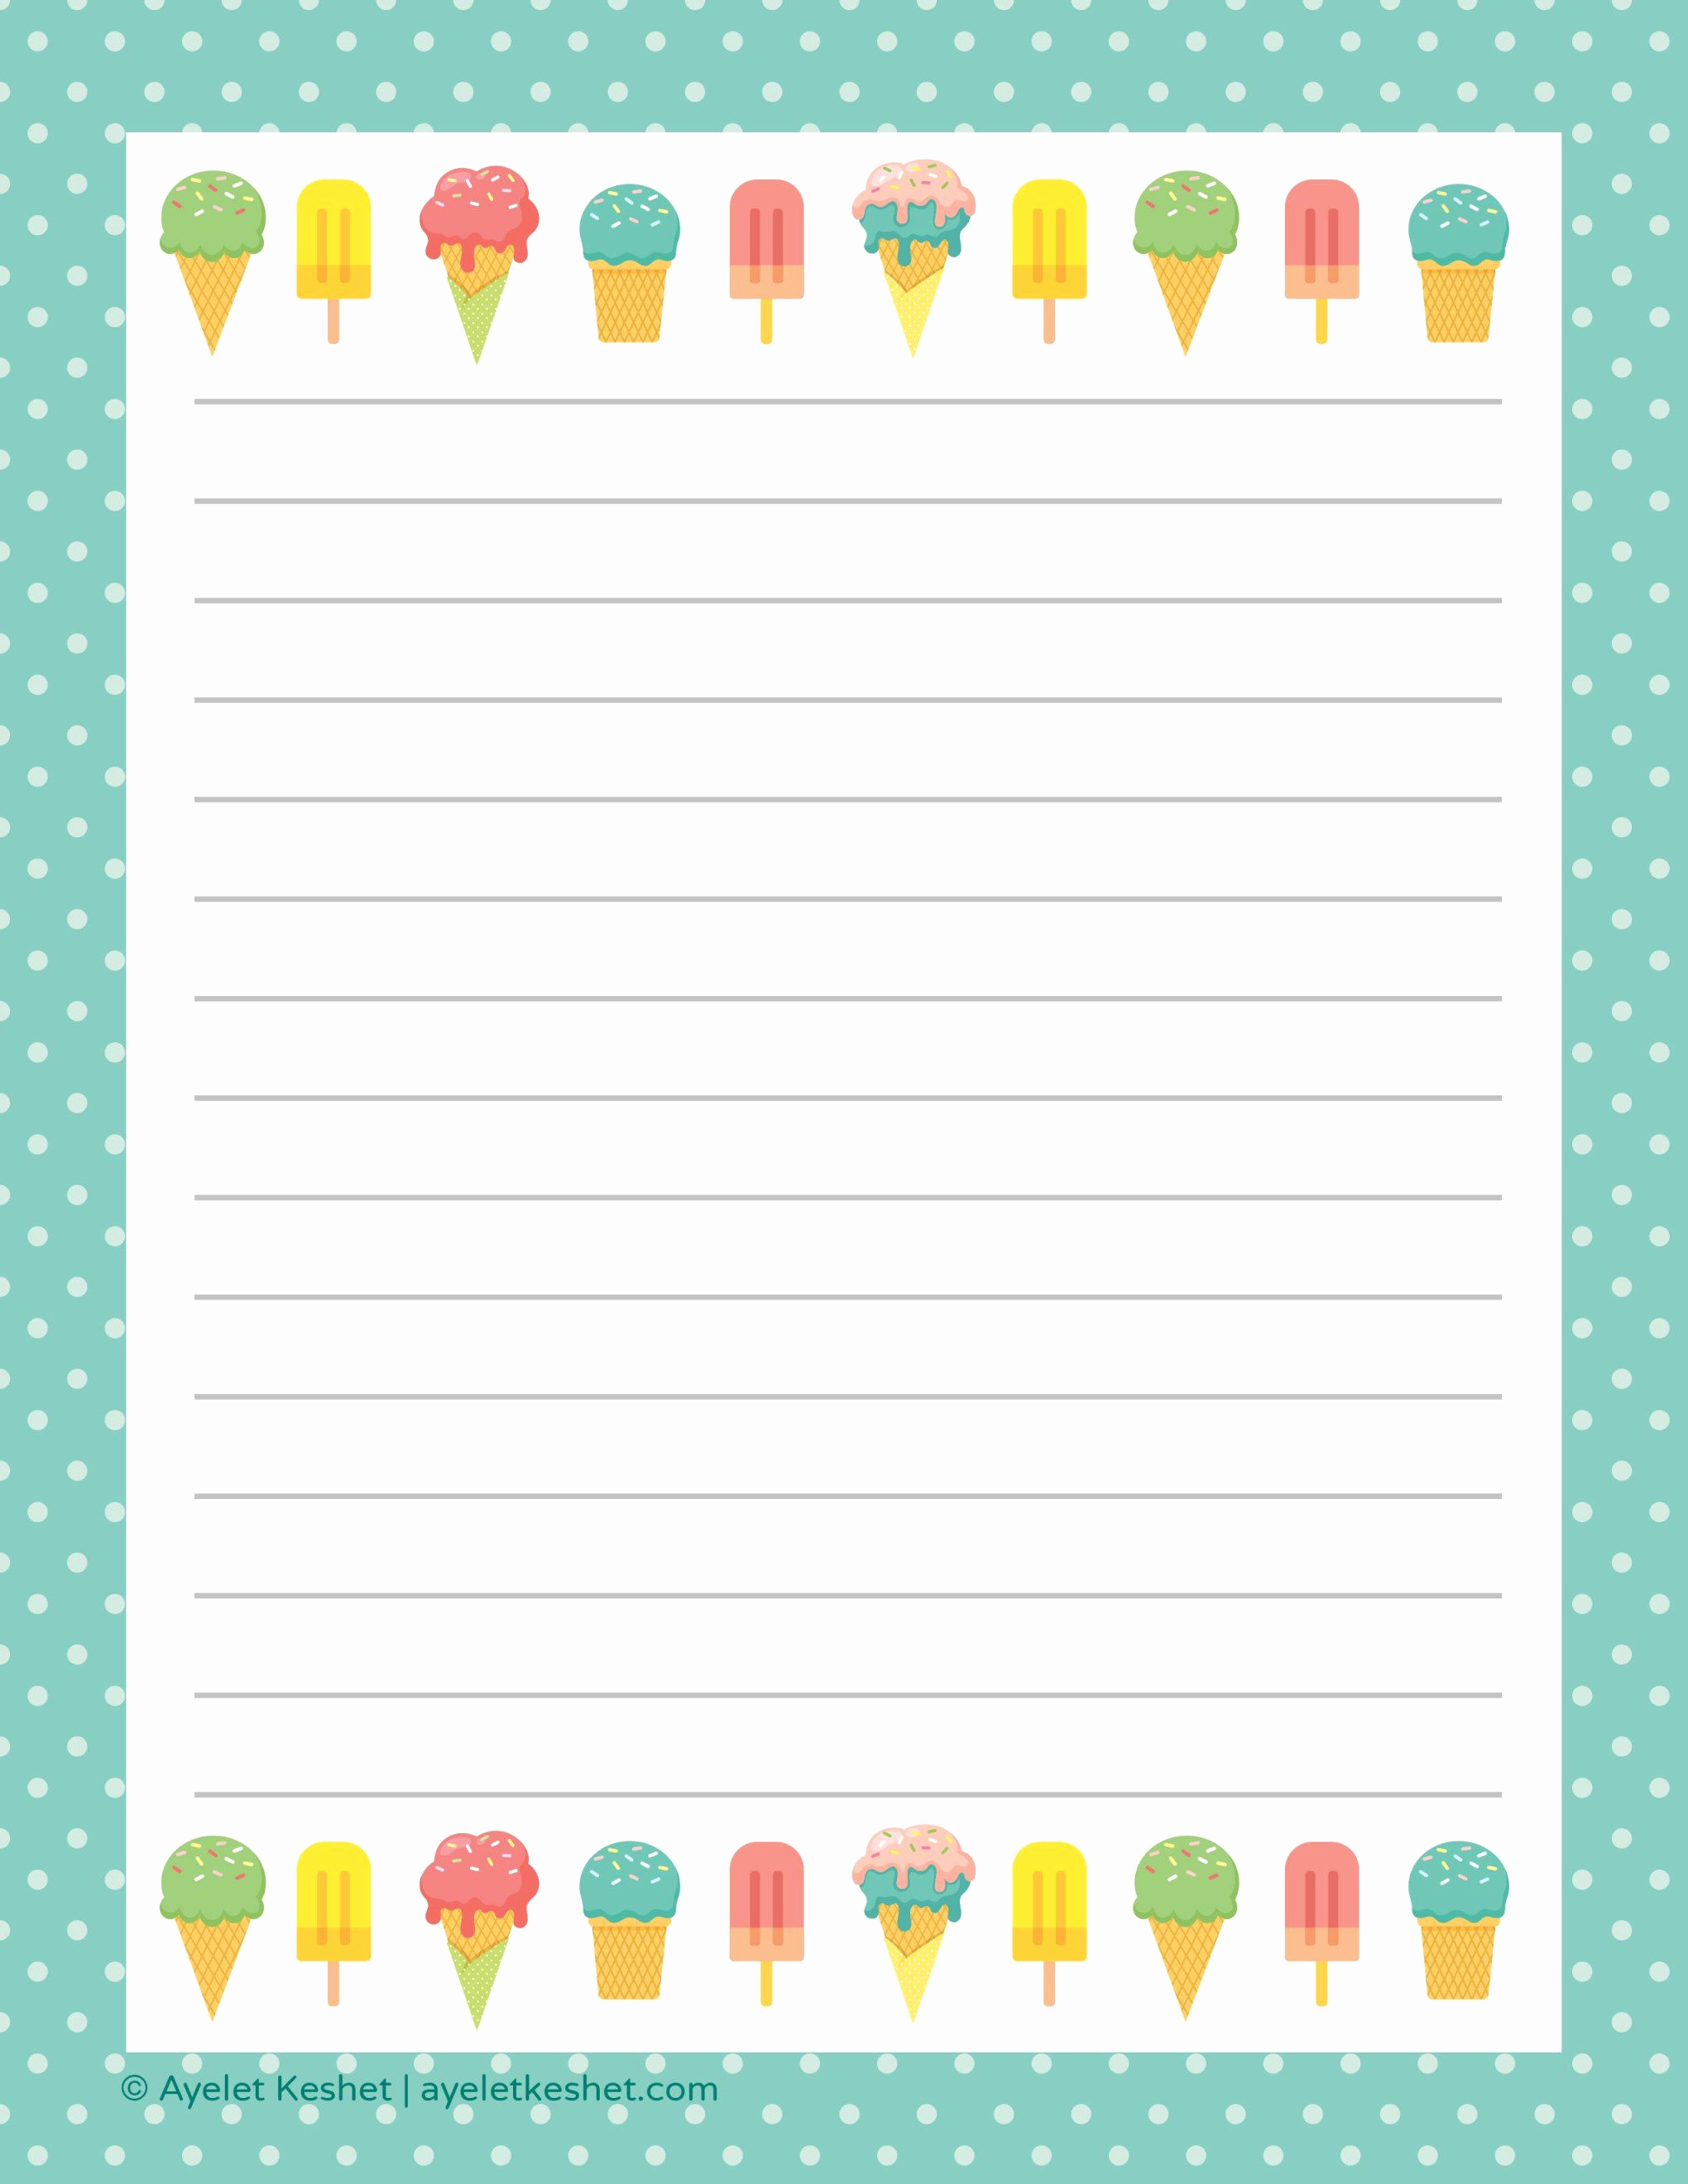 Free Printable Writing Paper Luxury Free Printable Letter Paper Printables to Go